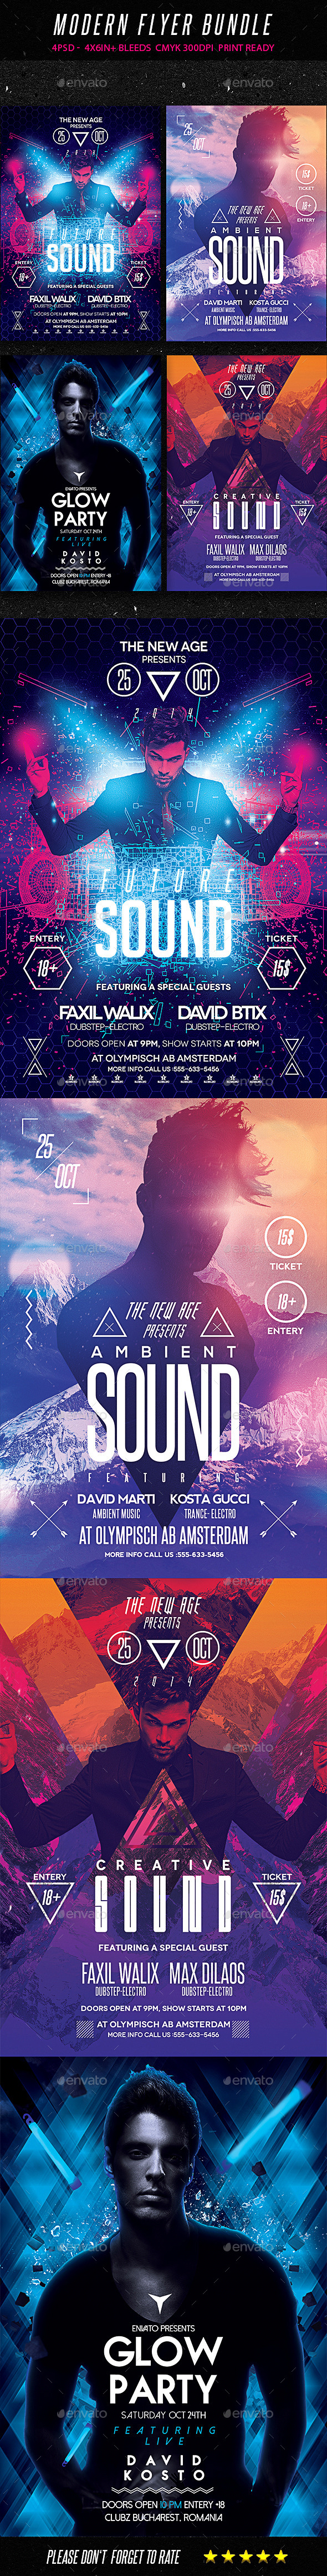 GraphicRiver Modern Flyer Bundle 9315355